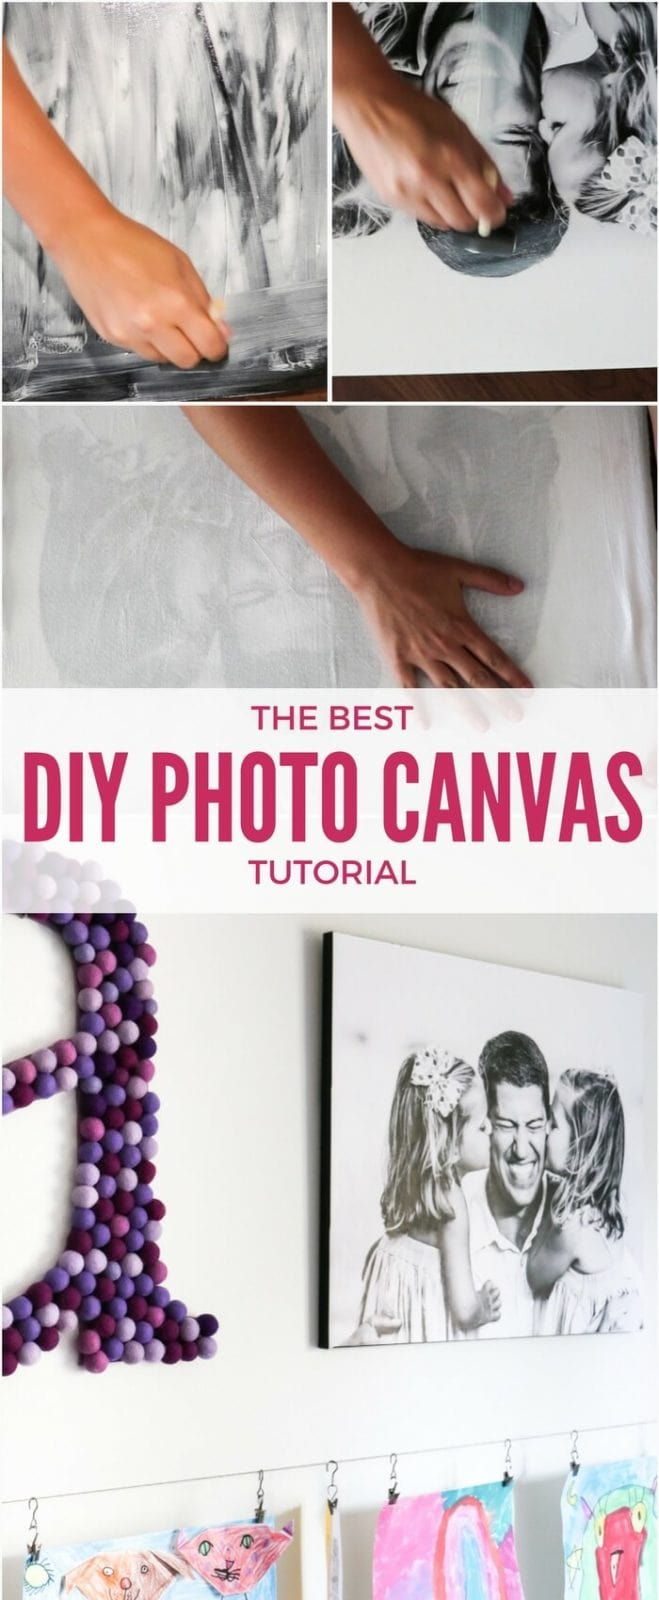 diy photo canvas prints with authentic texture | designer trapped